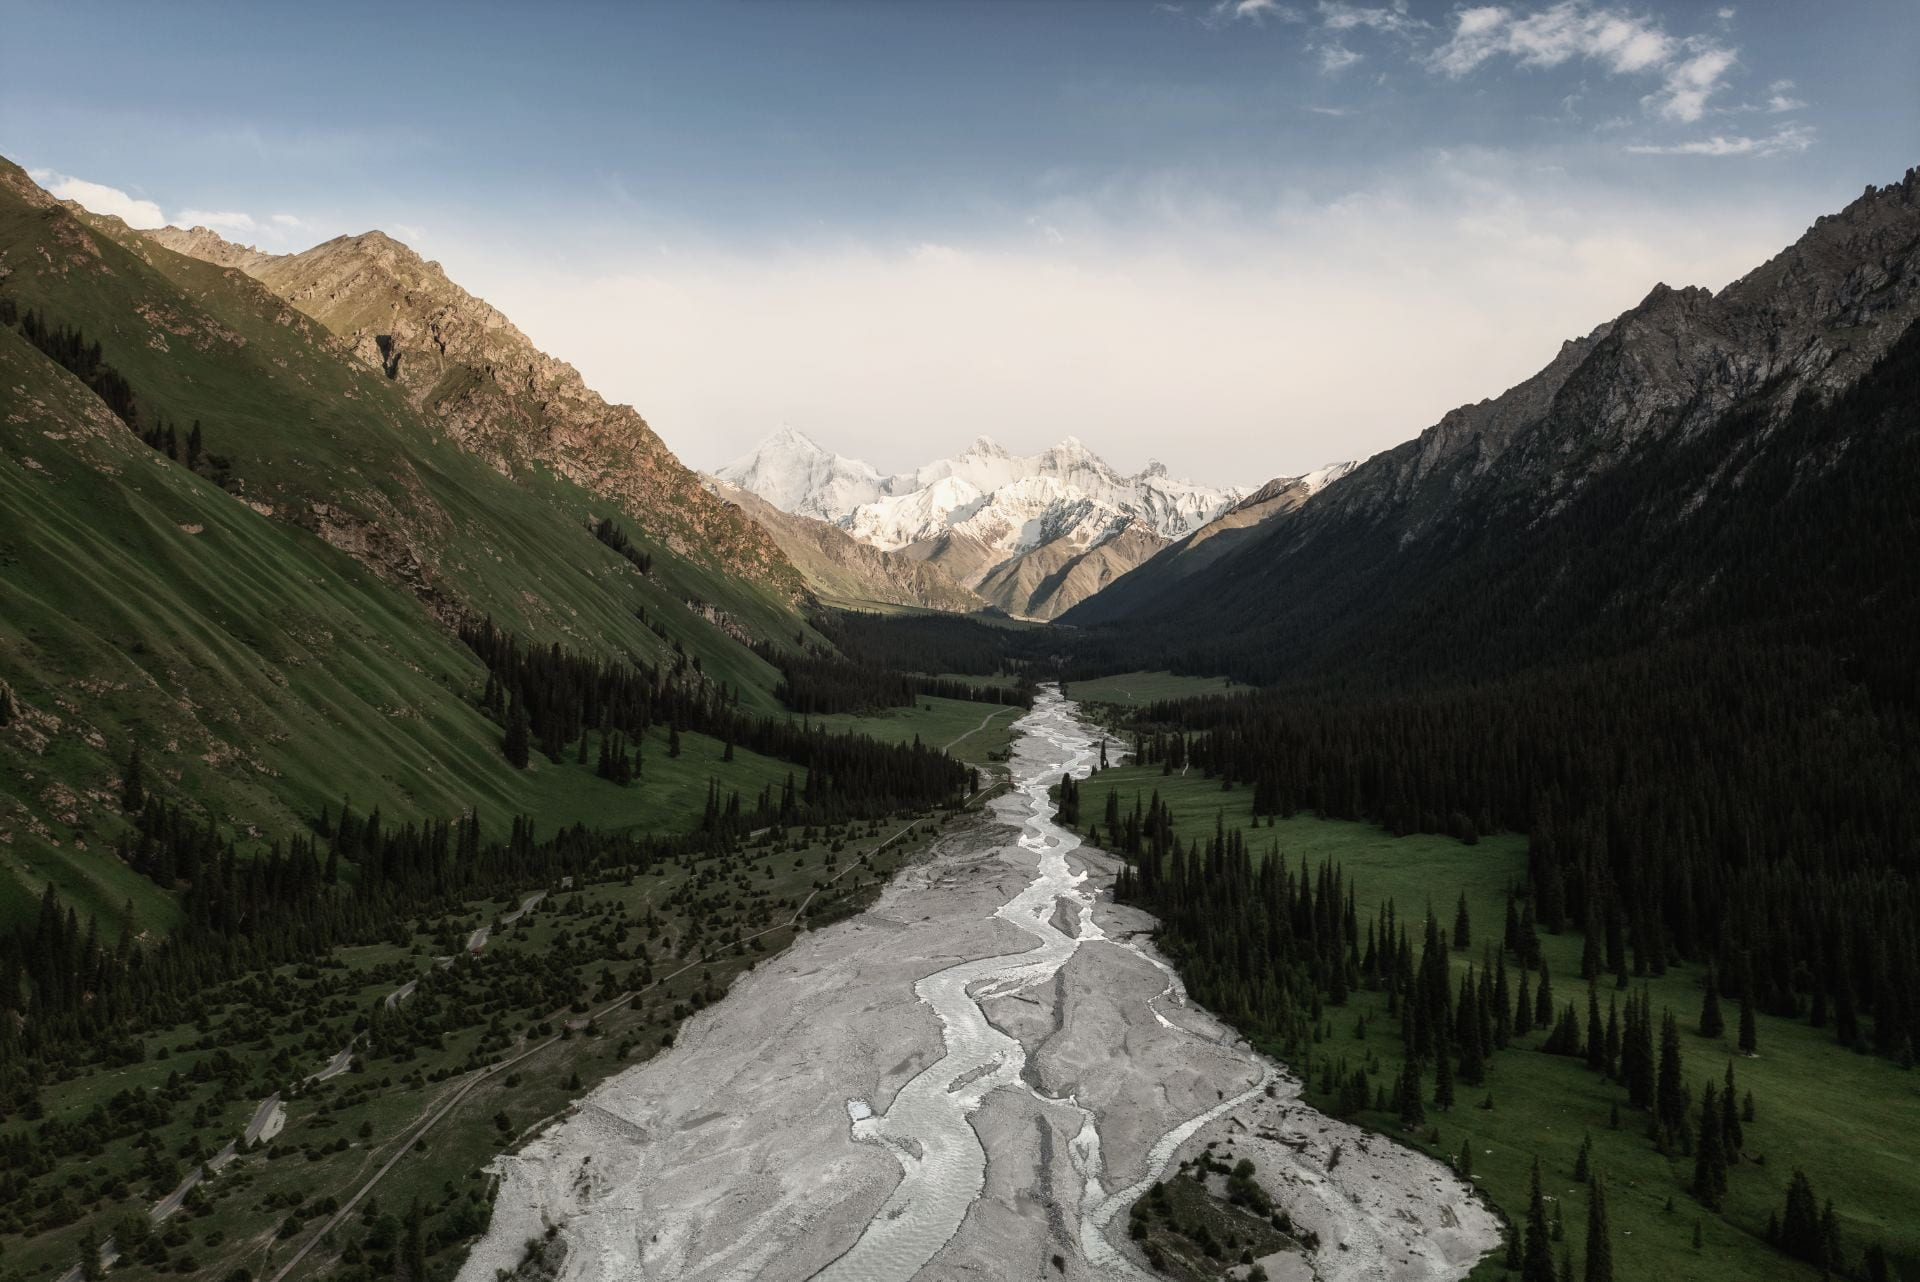 River-and-mountains-with-white-clouds-in-Xinjiang